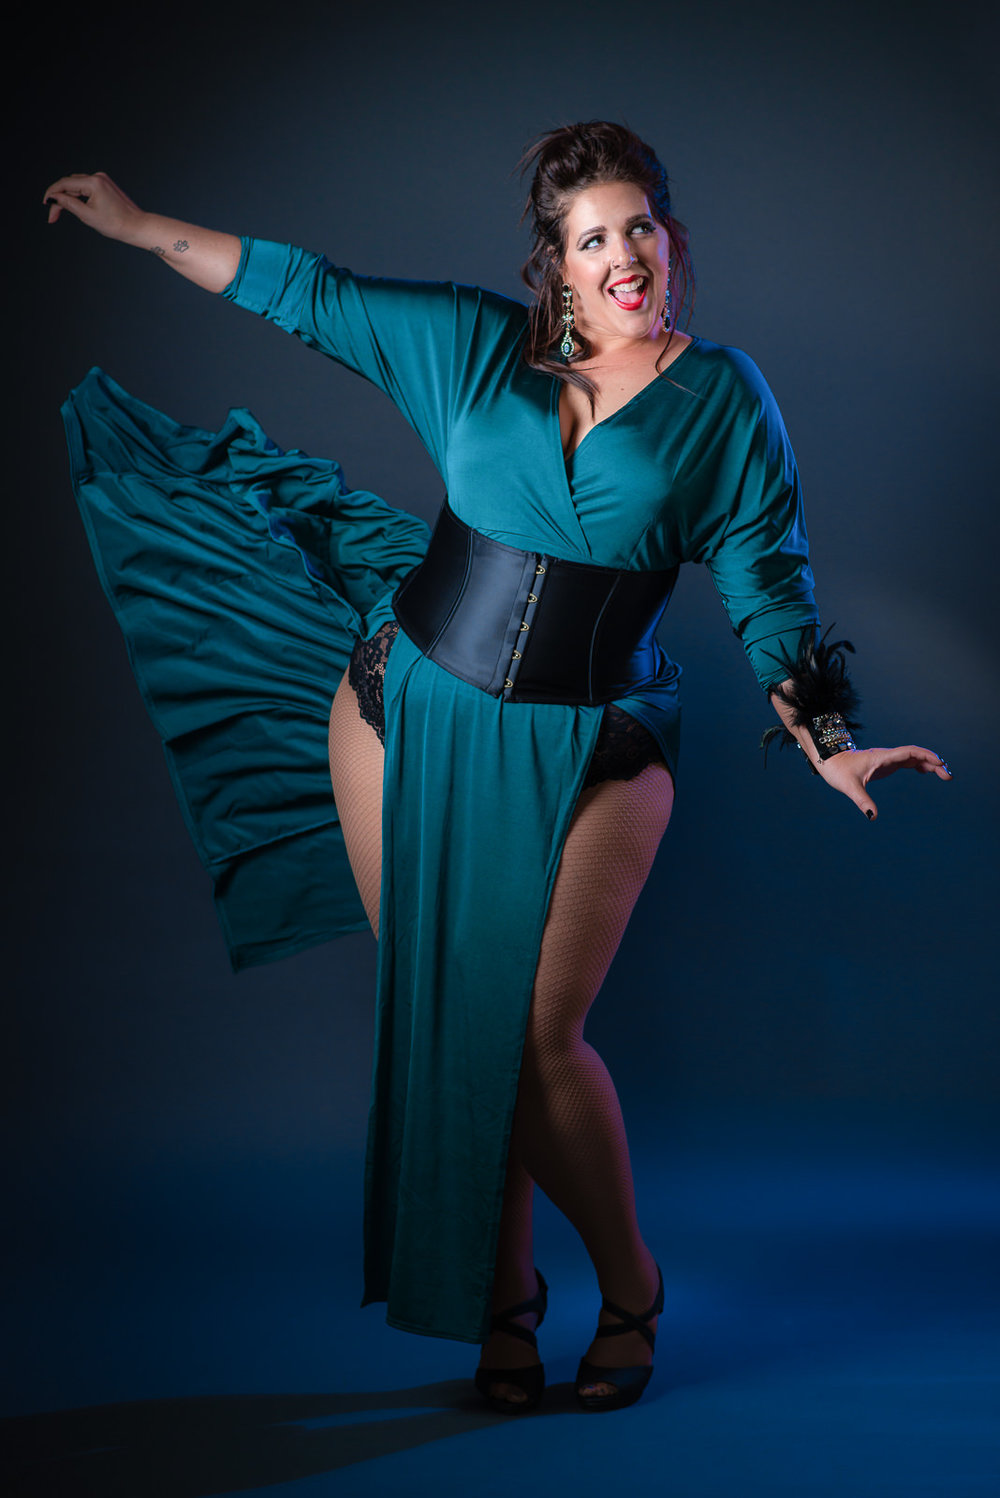 Full length pose of burlesque performer in long green dress.  Caboolture studio portrait photography